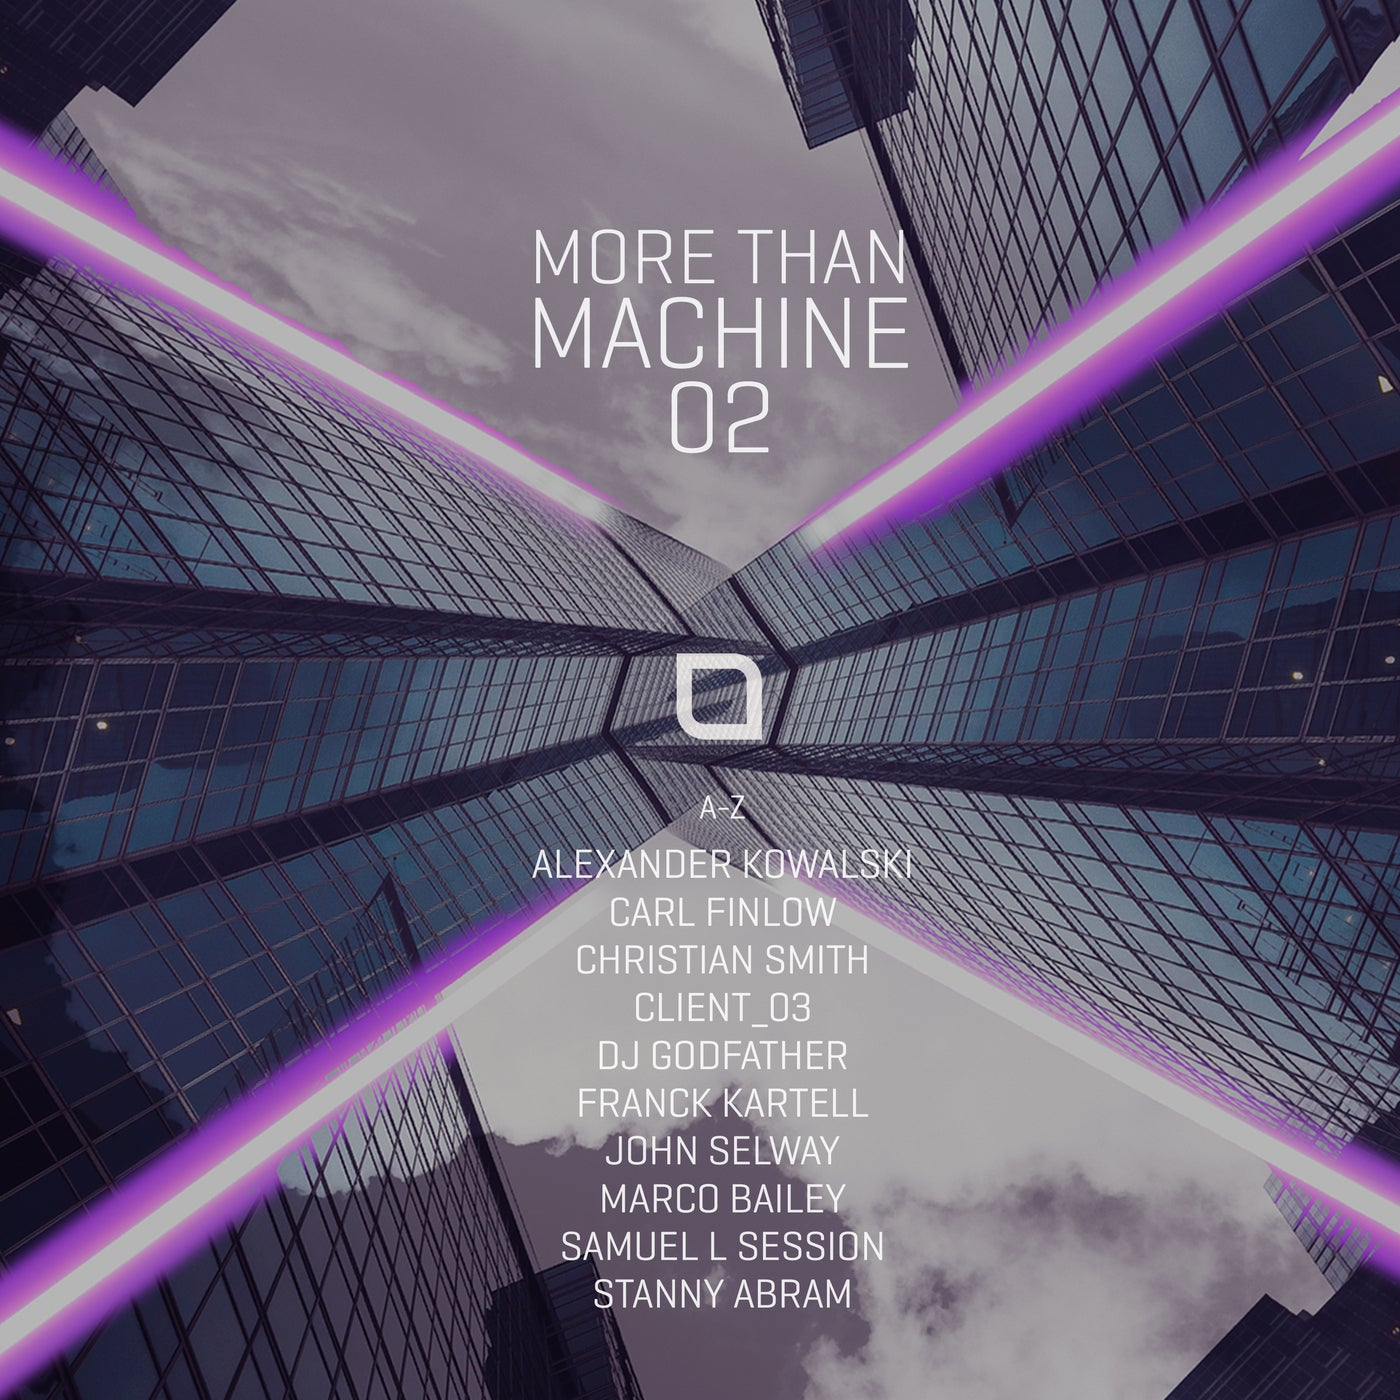 Download More Than Machine 02 on Electrobuzz